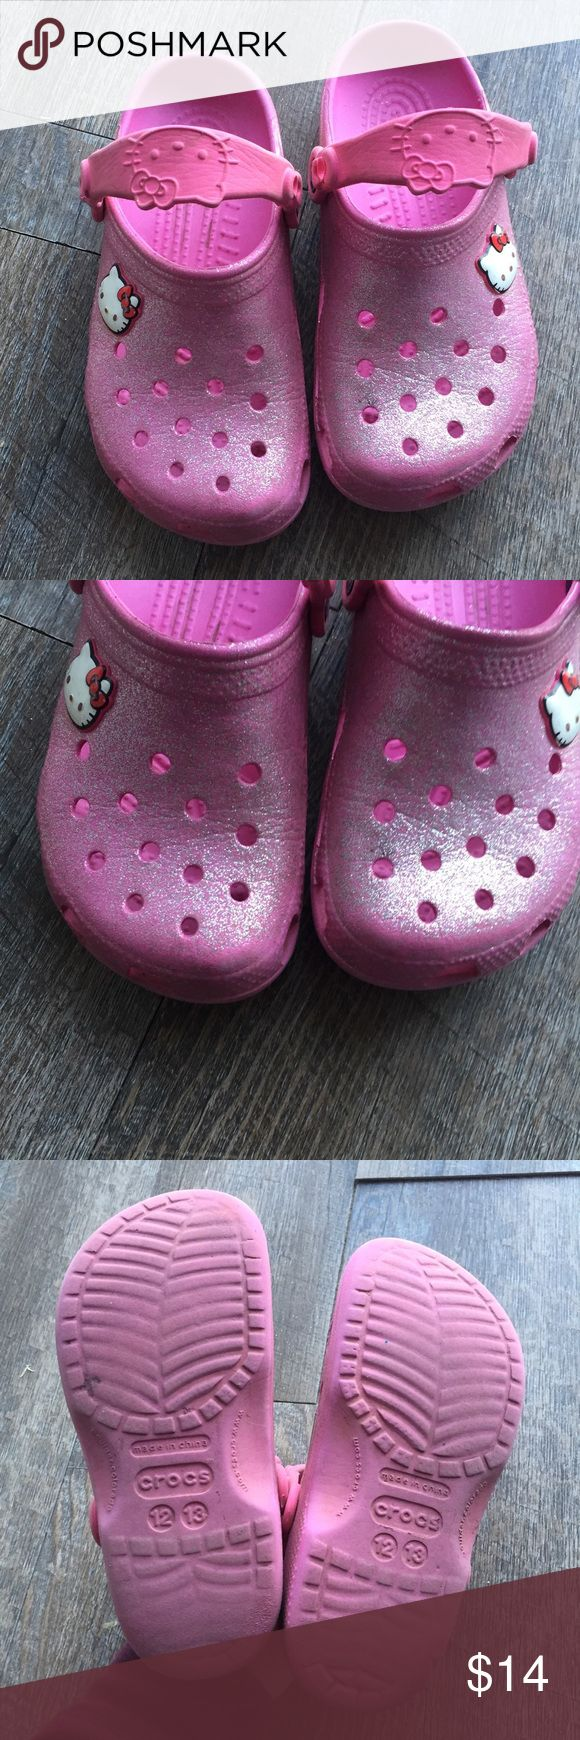 CROCS hello kitty little girl size 12/13 Little girls size 12/13. By the brand CRCOS. Are hello kitty themed. Worn but has life left. Has a glitter texture. Needs to be cleaned up. Smoke free home with pets CROCS Shoes Slippers